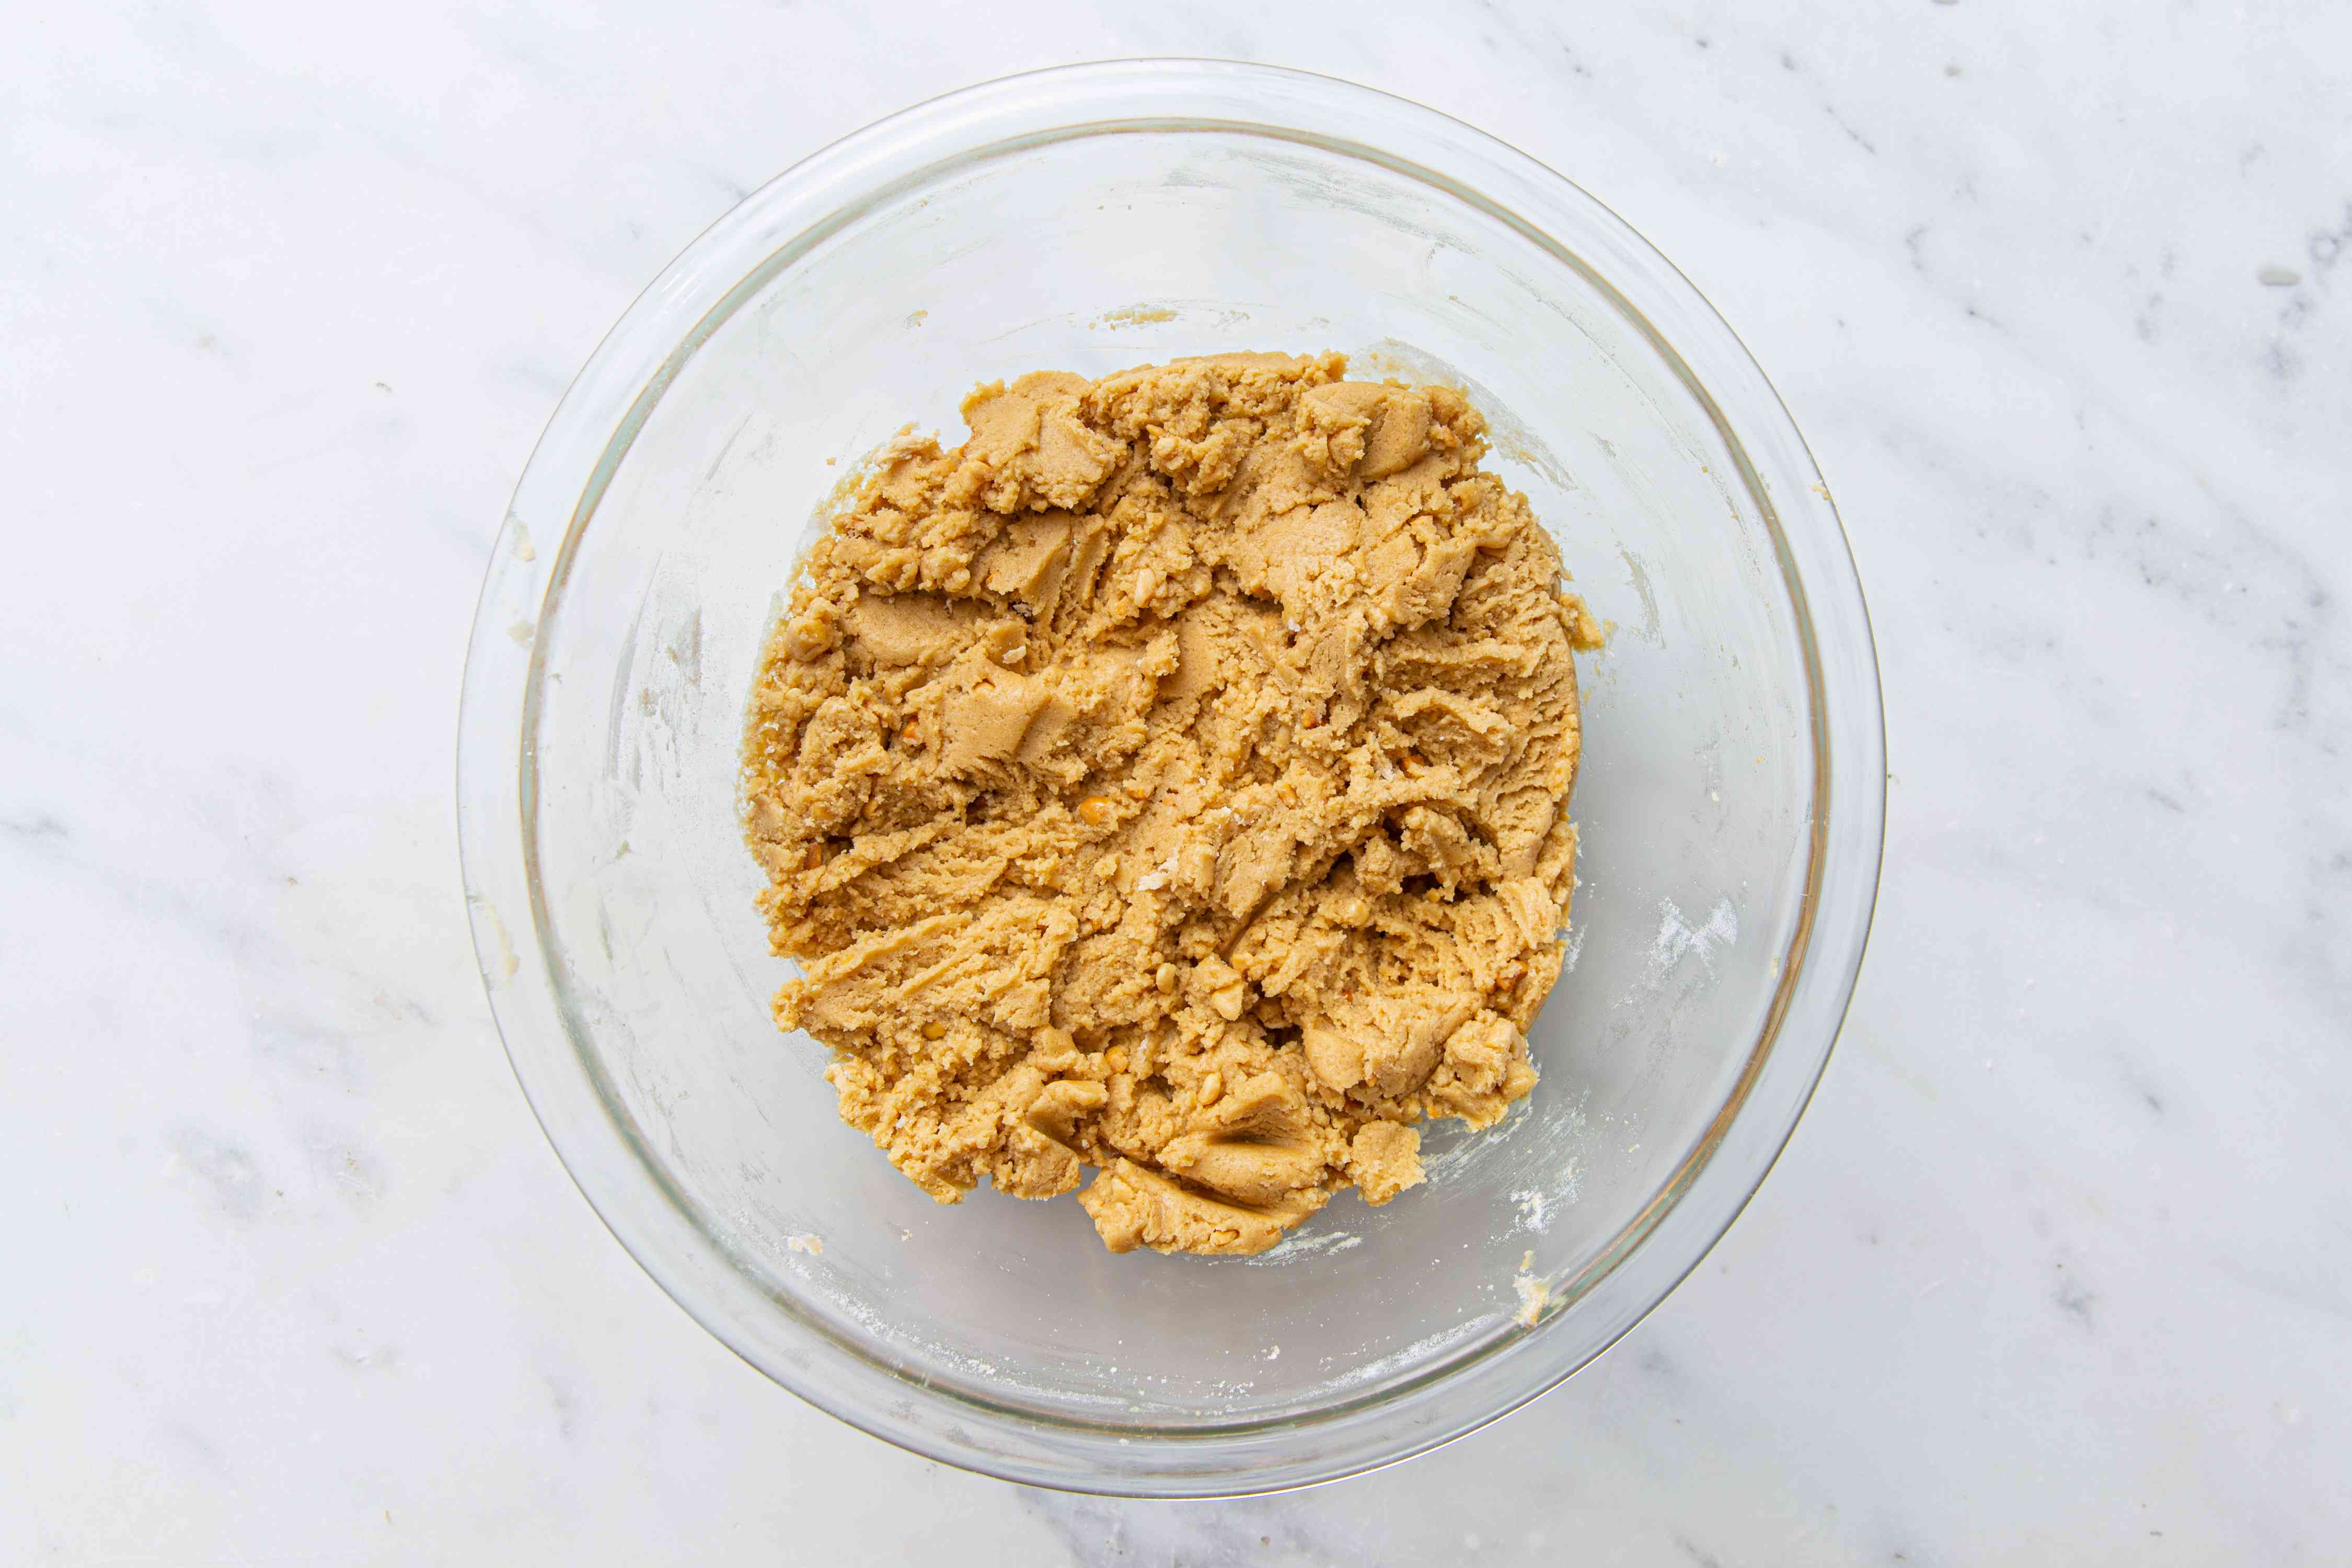 Flour mixture and creamed peanut butter mixture combined together in a large glass bowl